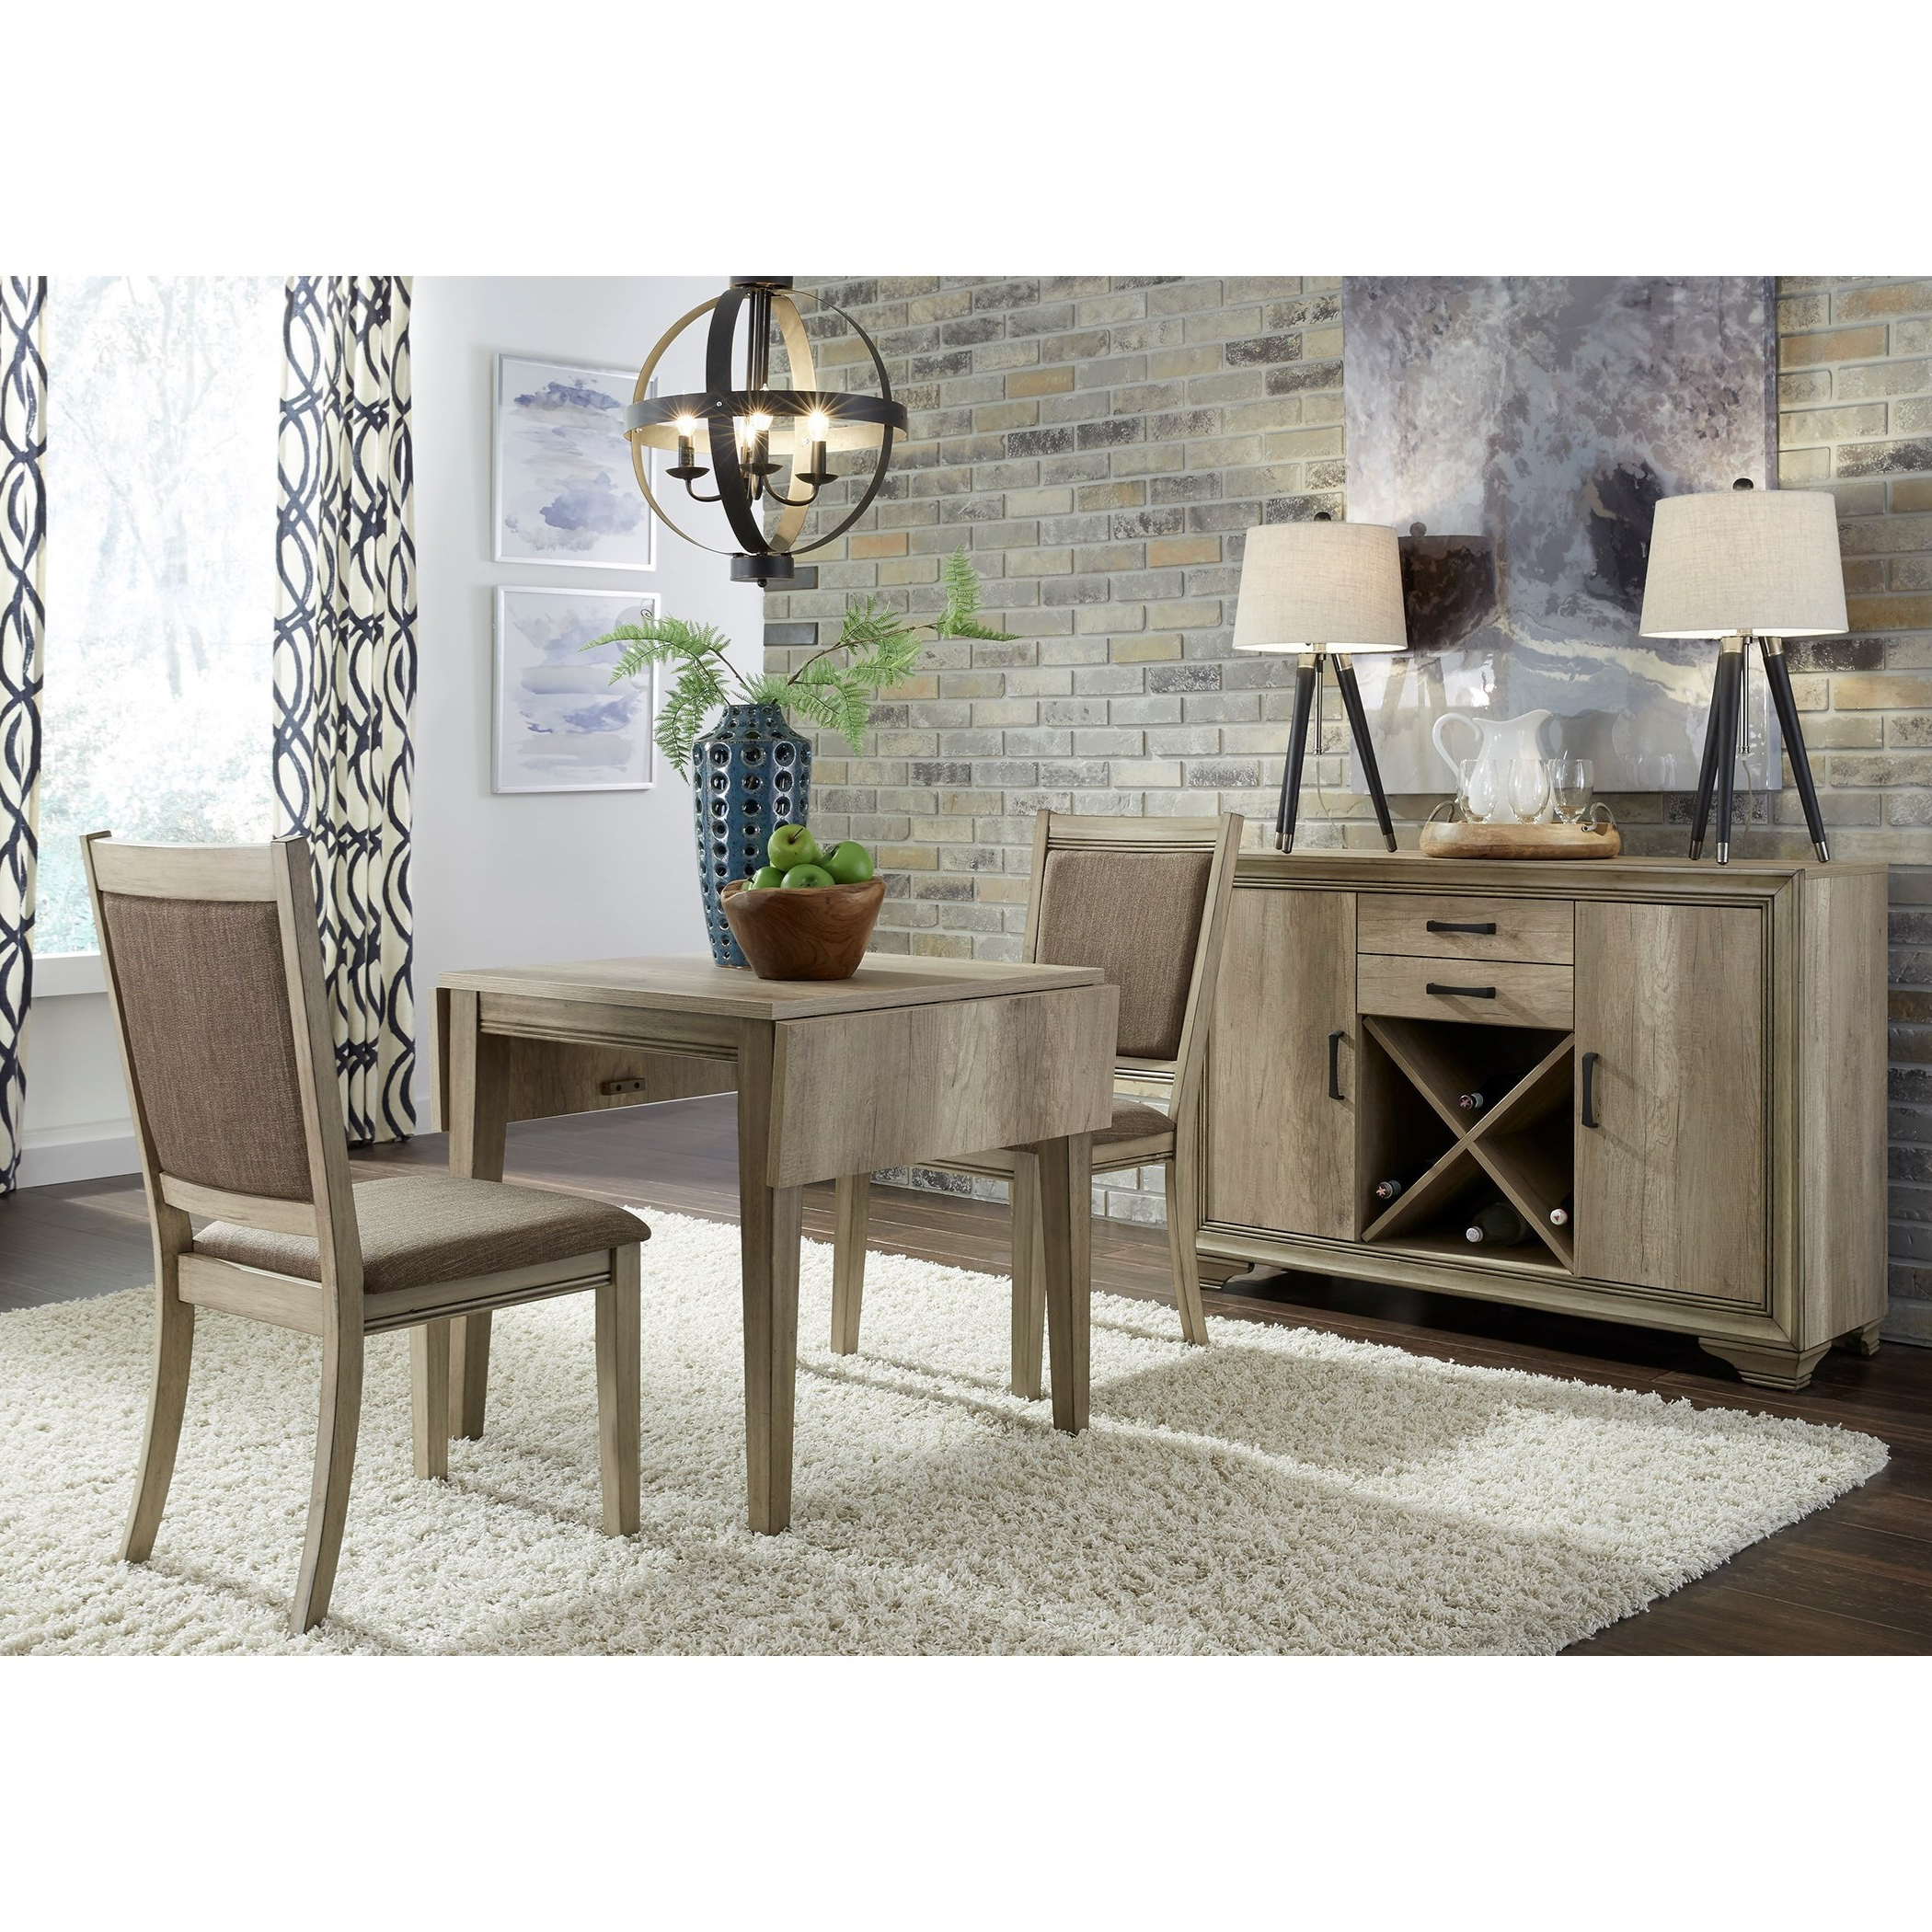 Favorite Transitional 3 Piece Drop Leaf Casual Dining Tables Set Within Sun Valley Opt 3 Piece Drop Leaf Set (View 7 of 25)